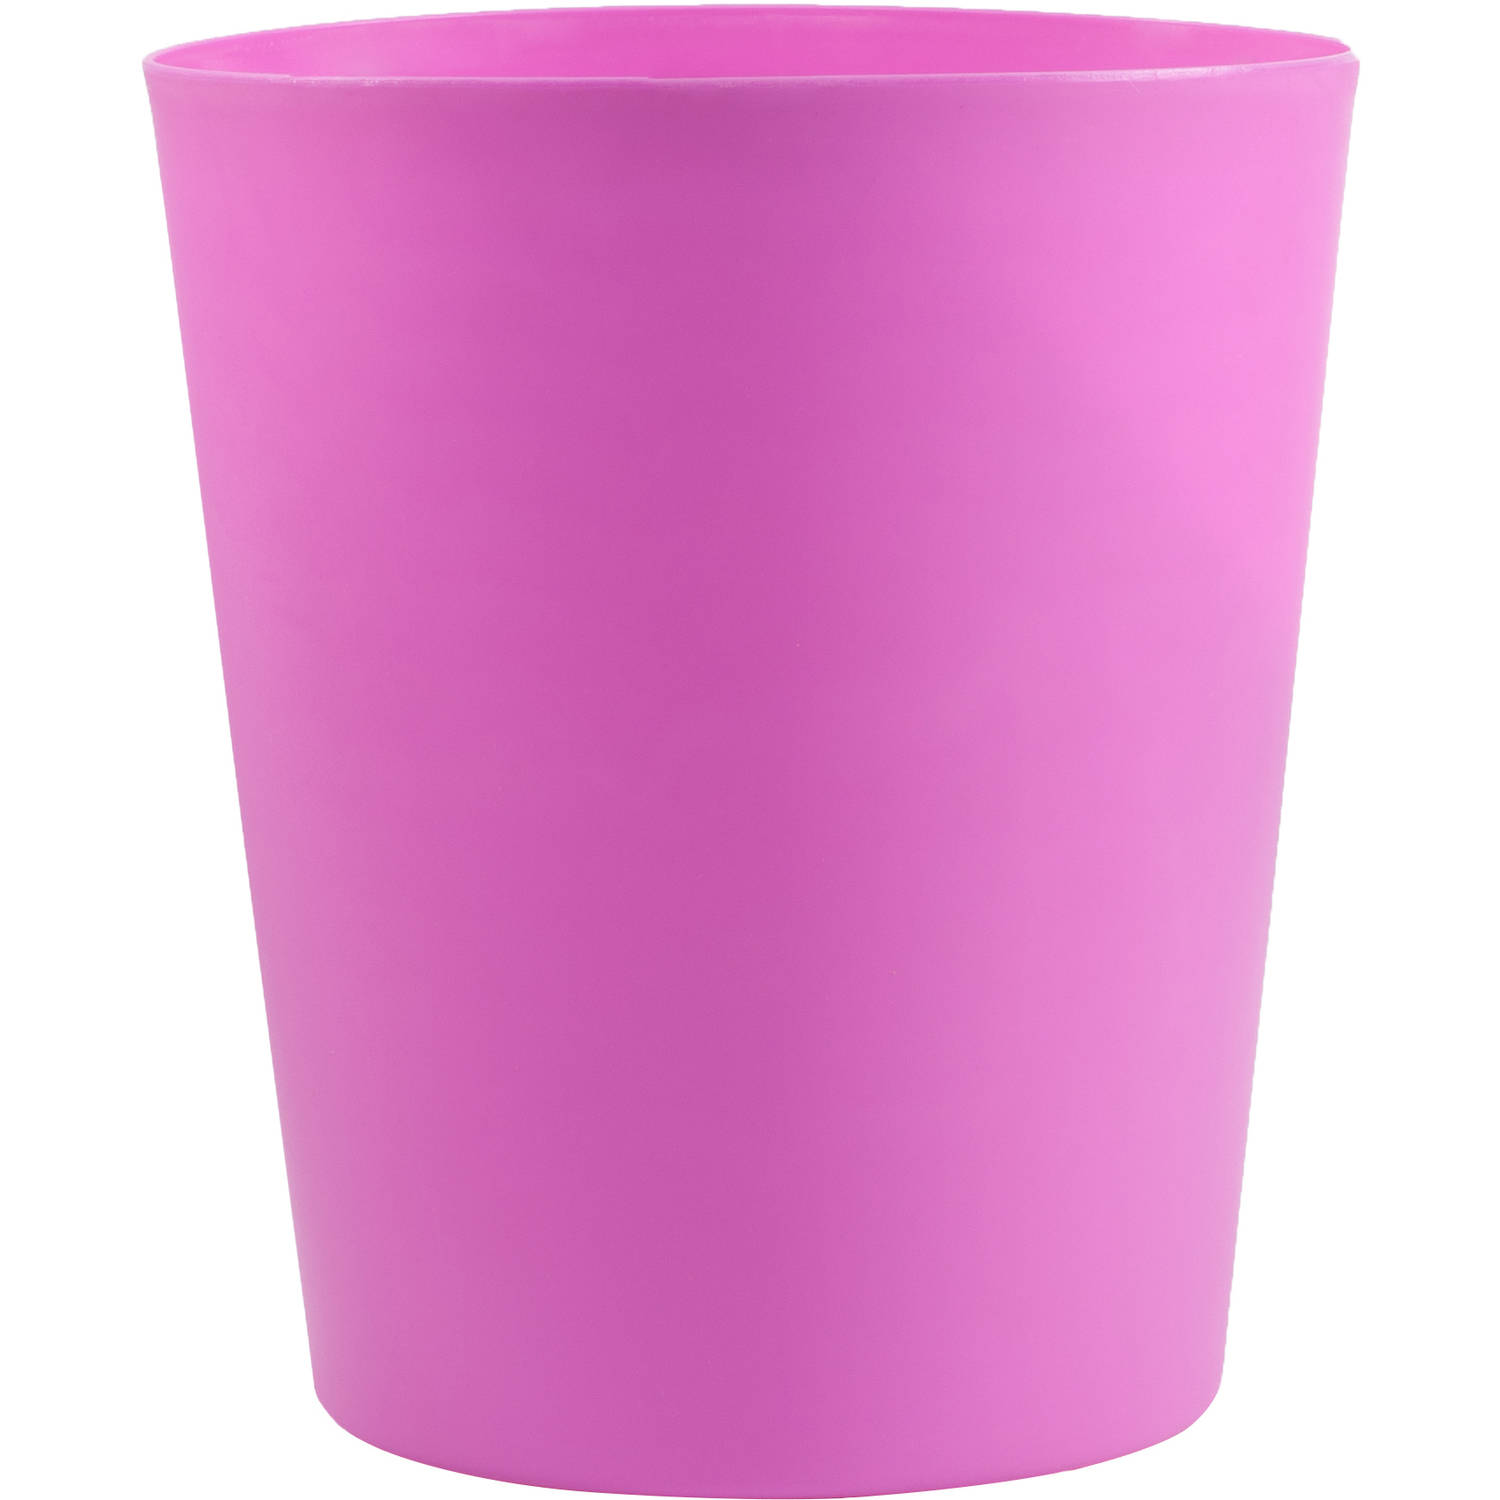 Everyday Home Trash Can, Pink by Trademark Global LLC